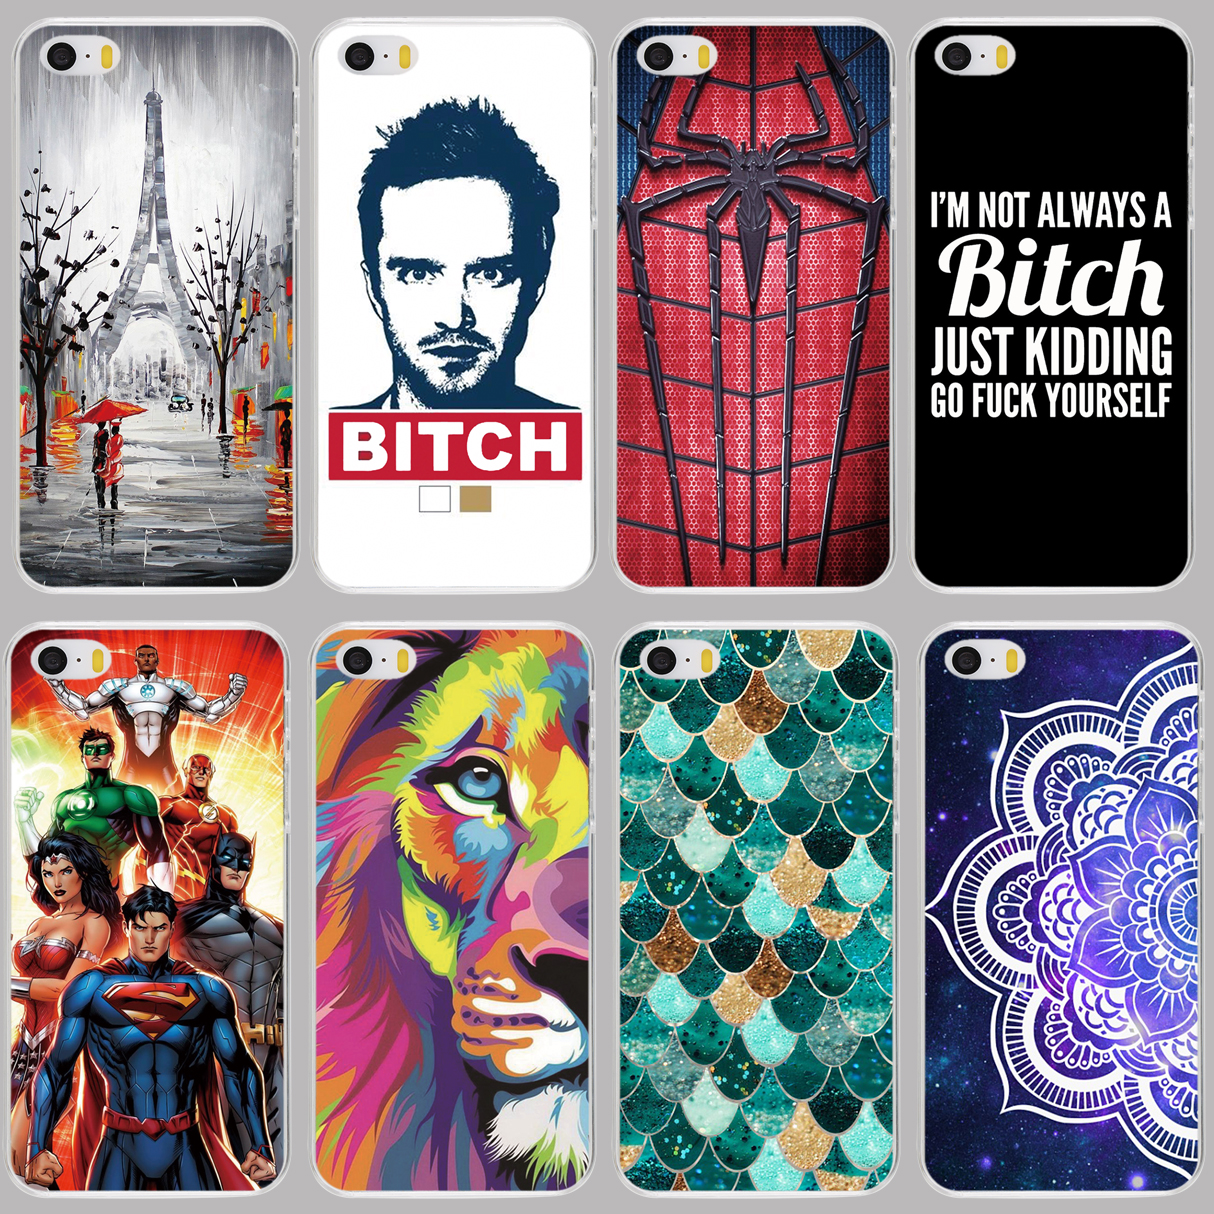 cell phone <font><b>case</b></font> cover <font><b>for</b></font> <font><b>Samsung</b></font> <font><b>Galaxy</b></font> A3 A310 A5 A510 A7 A8 A9 2016 bitch <font><b>spider</b></font> mandala <font><b>super</b></font> <font><b>hero</b></font> <font><b>man</b></font> lion Effel Towel